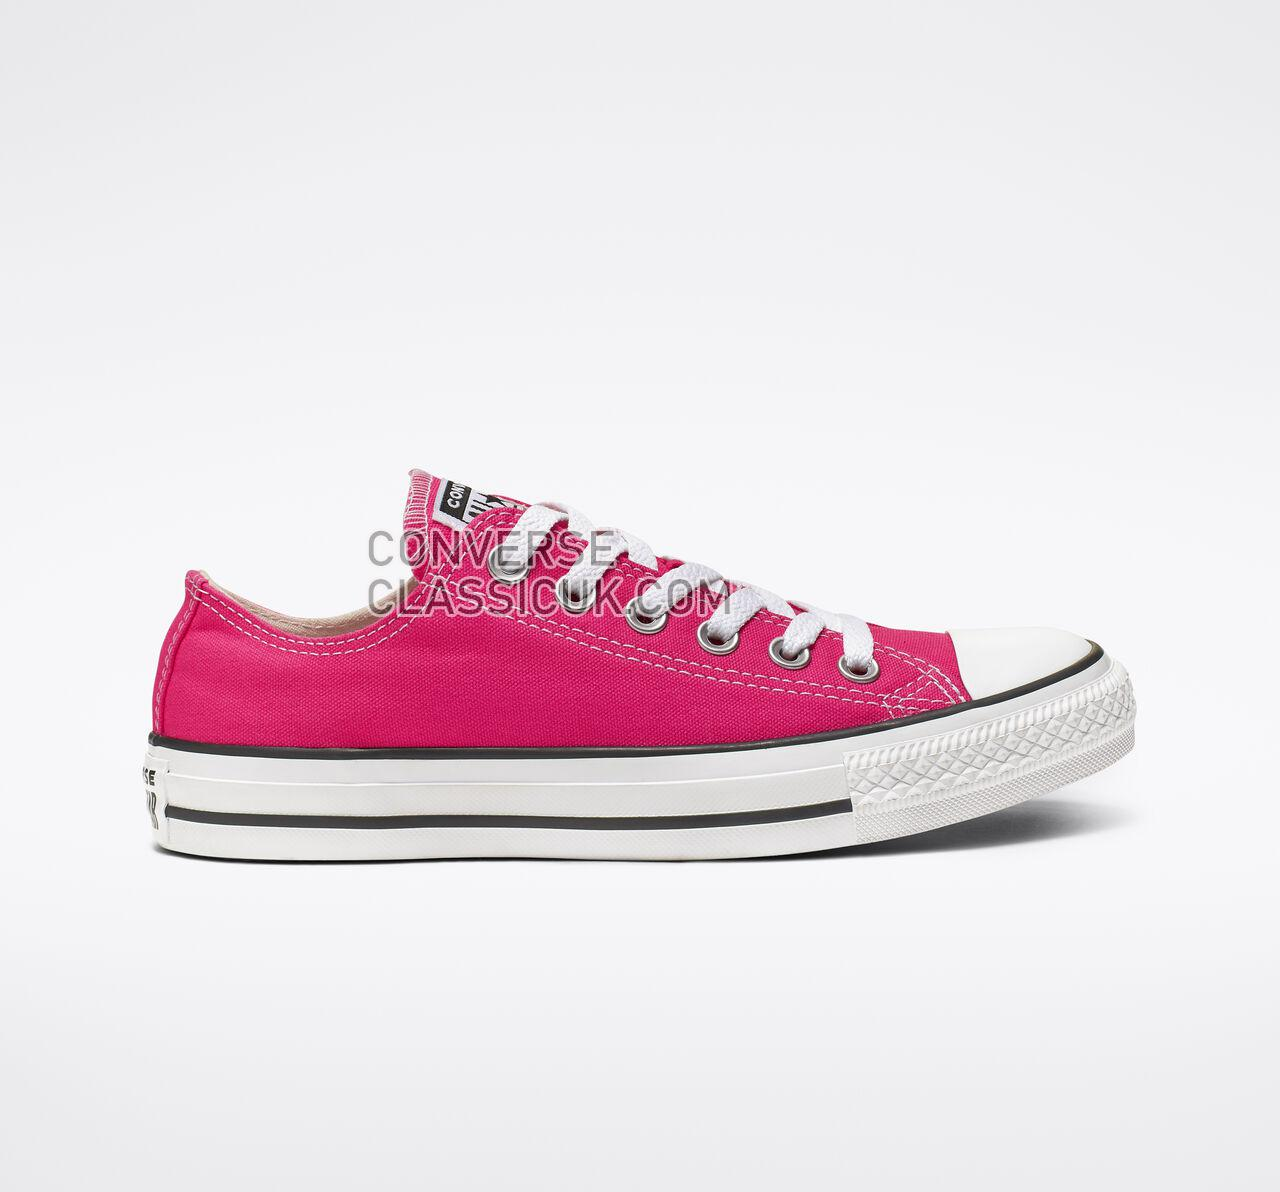 Converse Chuck Taylor All Star Seasonal Color Low Top Mens Womens Unisex 164294F Strawberry Jam Shoes